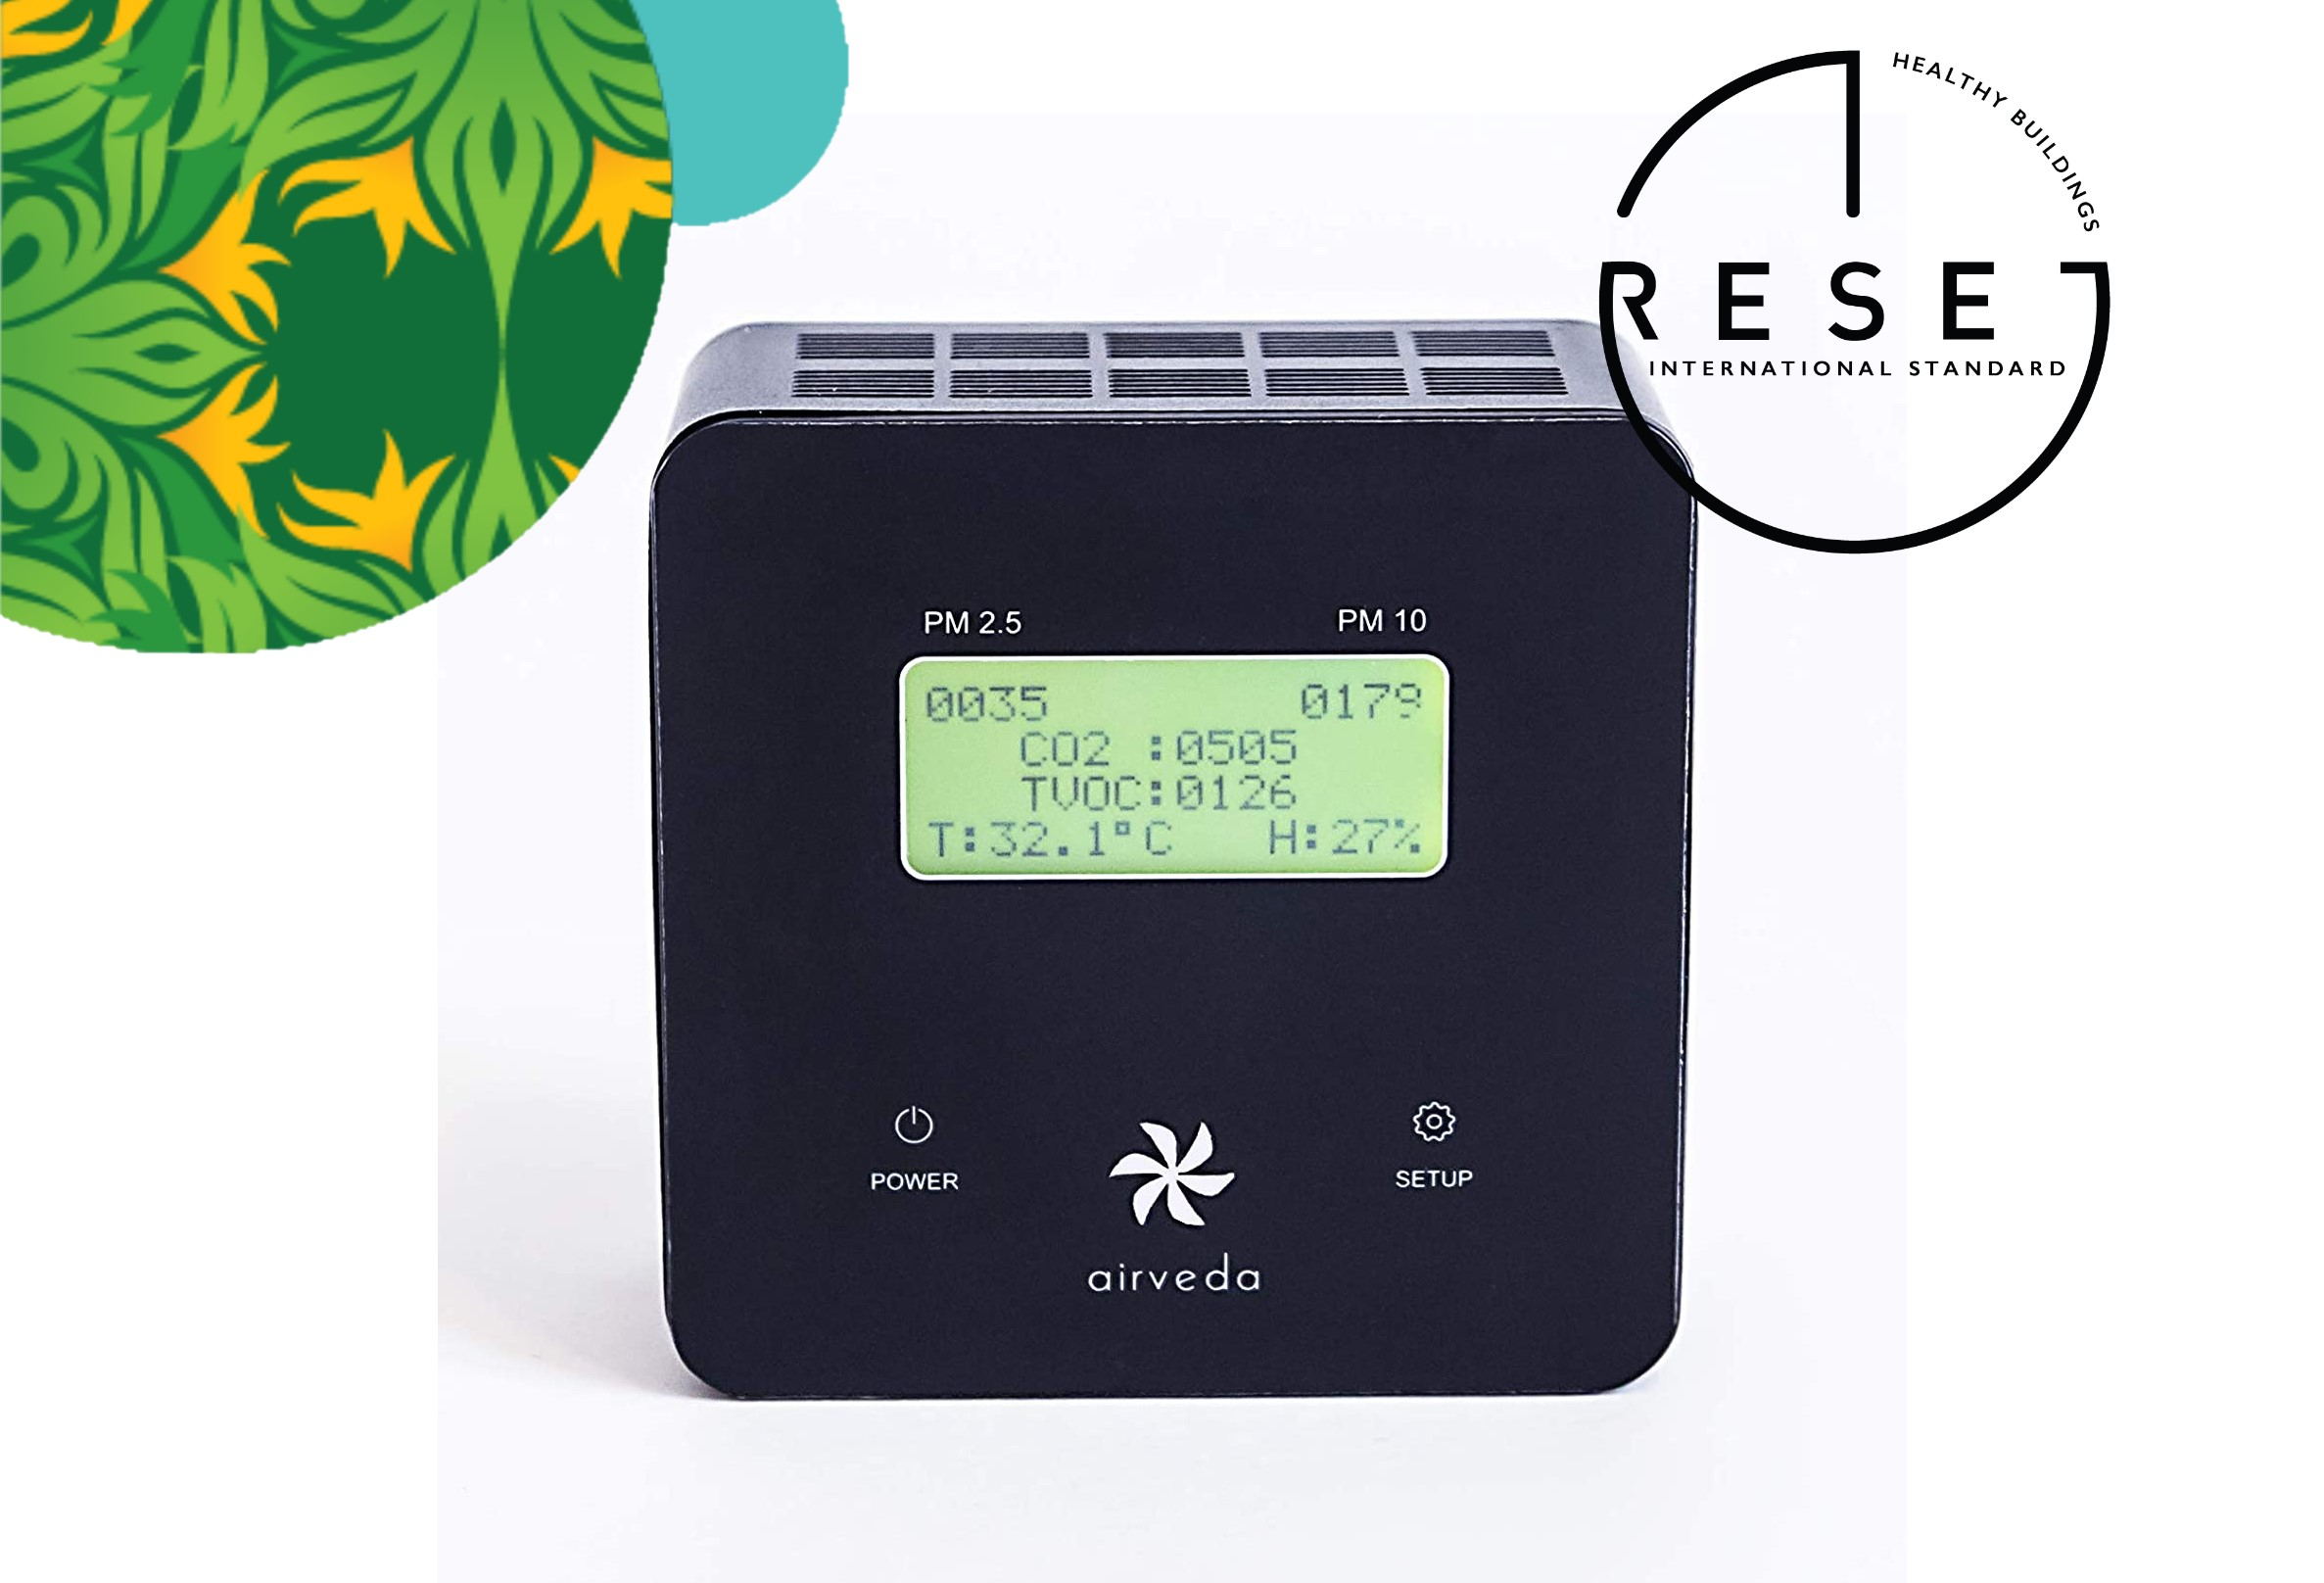 RESET certified Airveda PM2.5, CO2, TVOC, Temp, Humidity Monitor